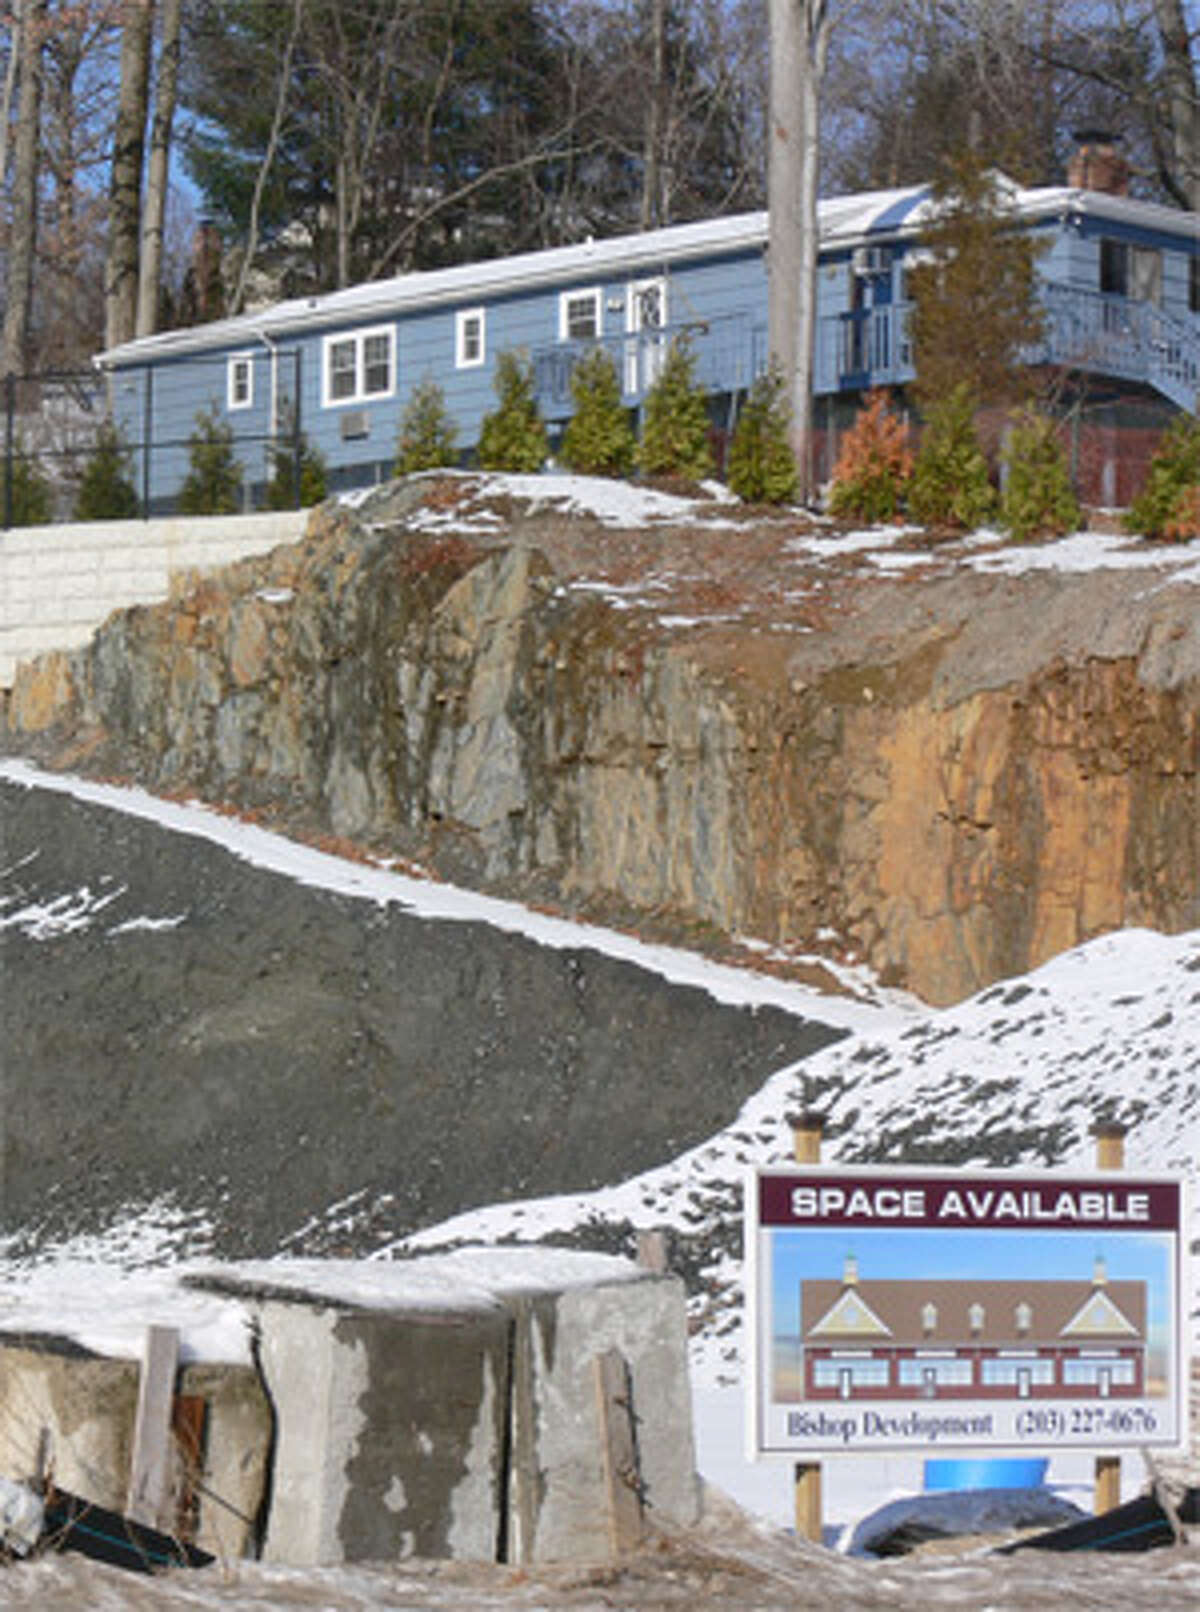 A view of the ledge's vertical drop from the Turner Road house to the Route 110 road level, where a retail building and parking lot will be built.